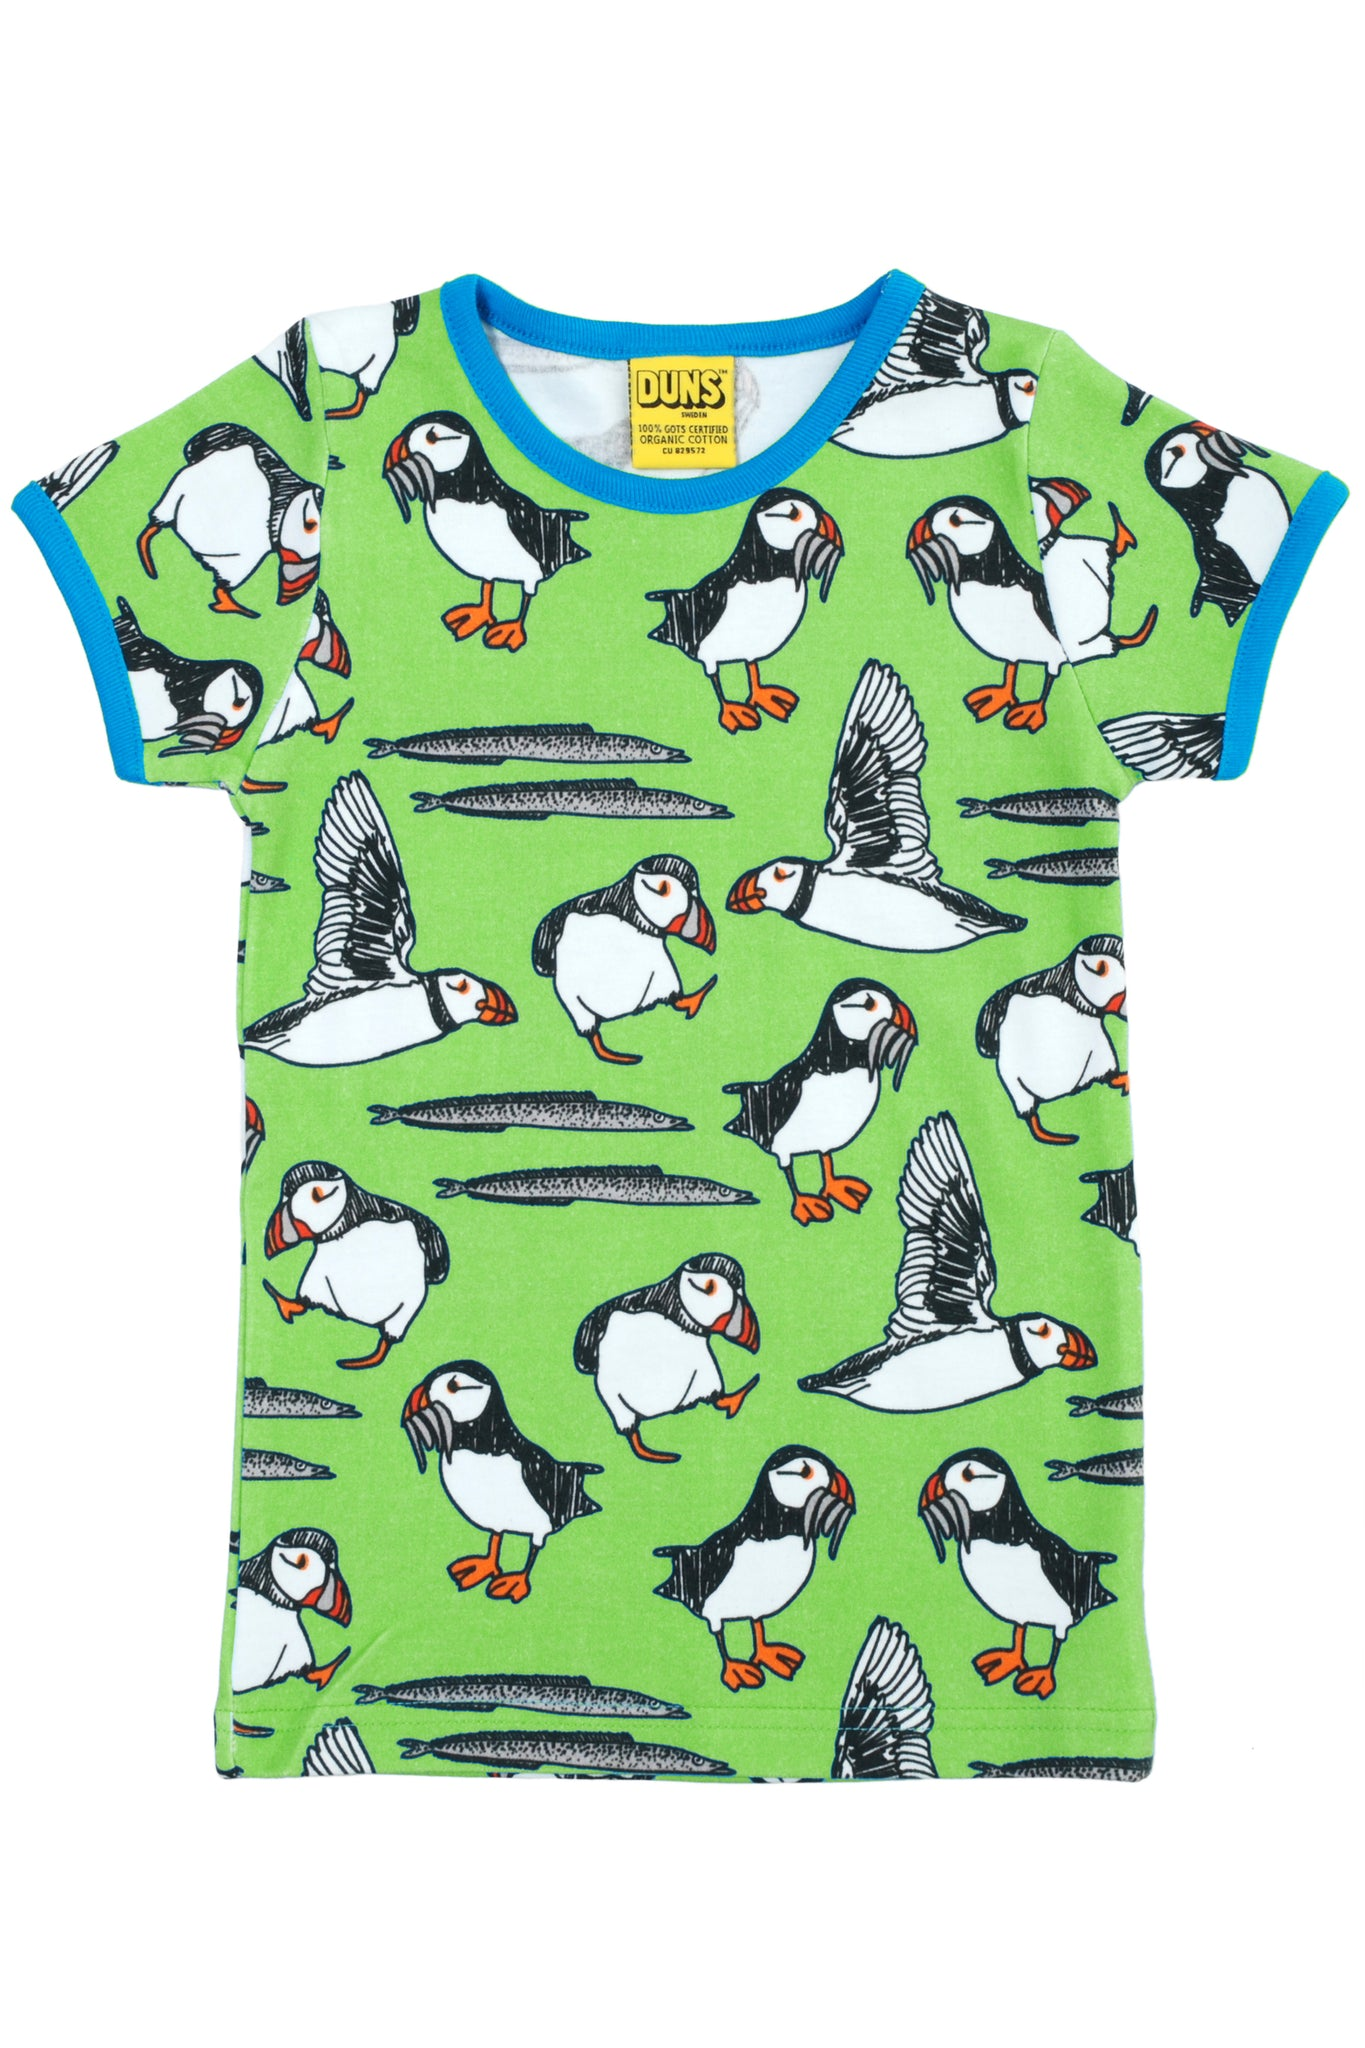 Short Sleeve Puffins Top Green - DUNS Fashion - Snugglefox